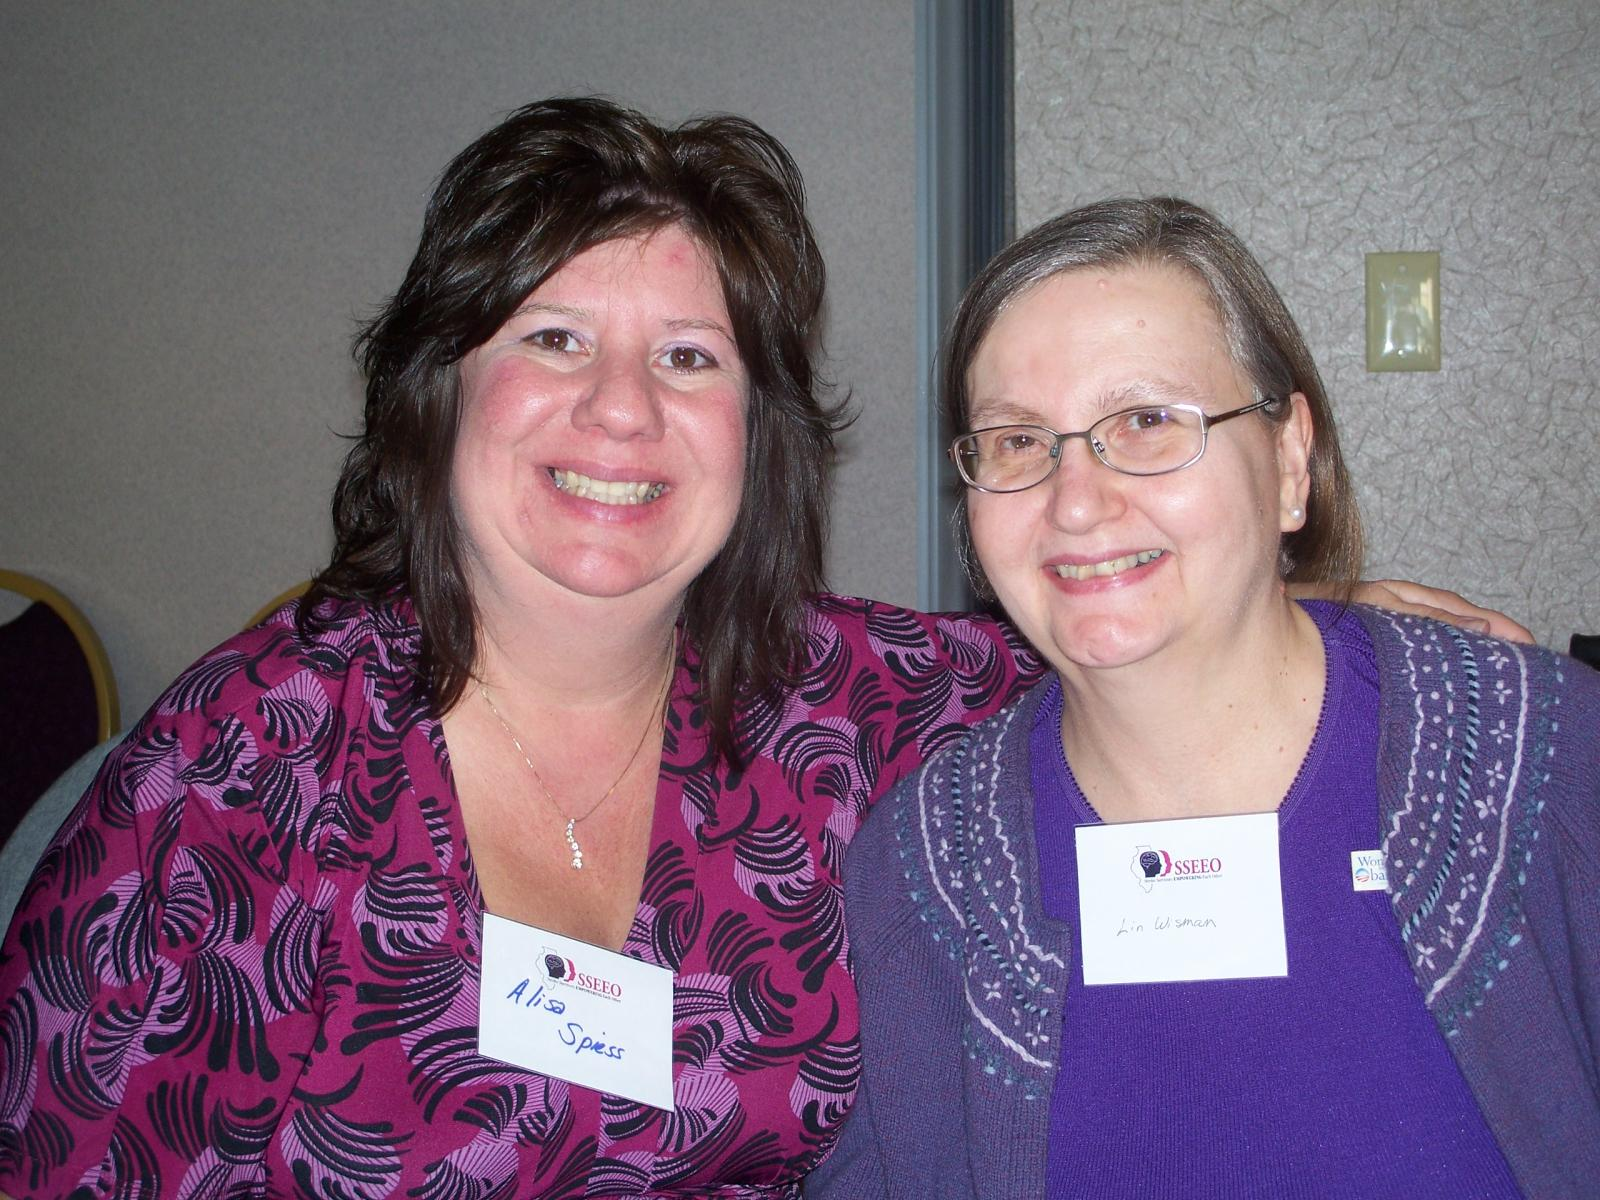 LIN AND LISA AT THE STROKE CONVENTION